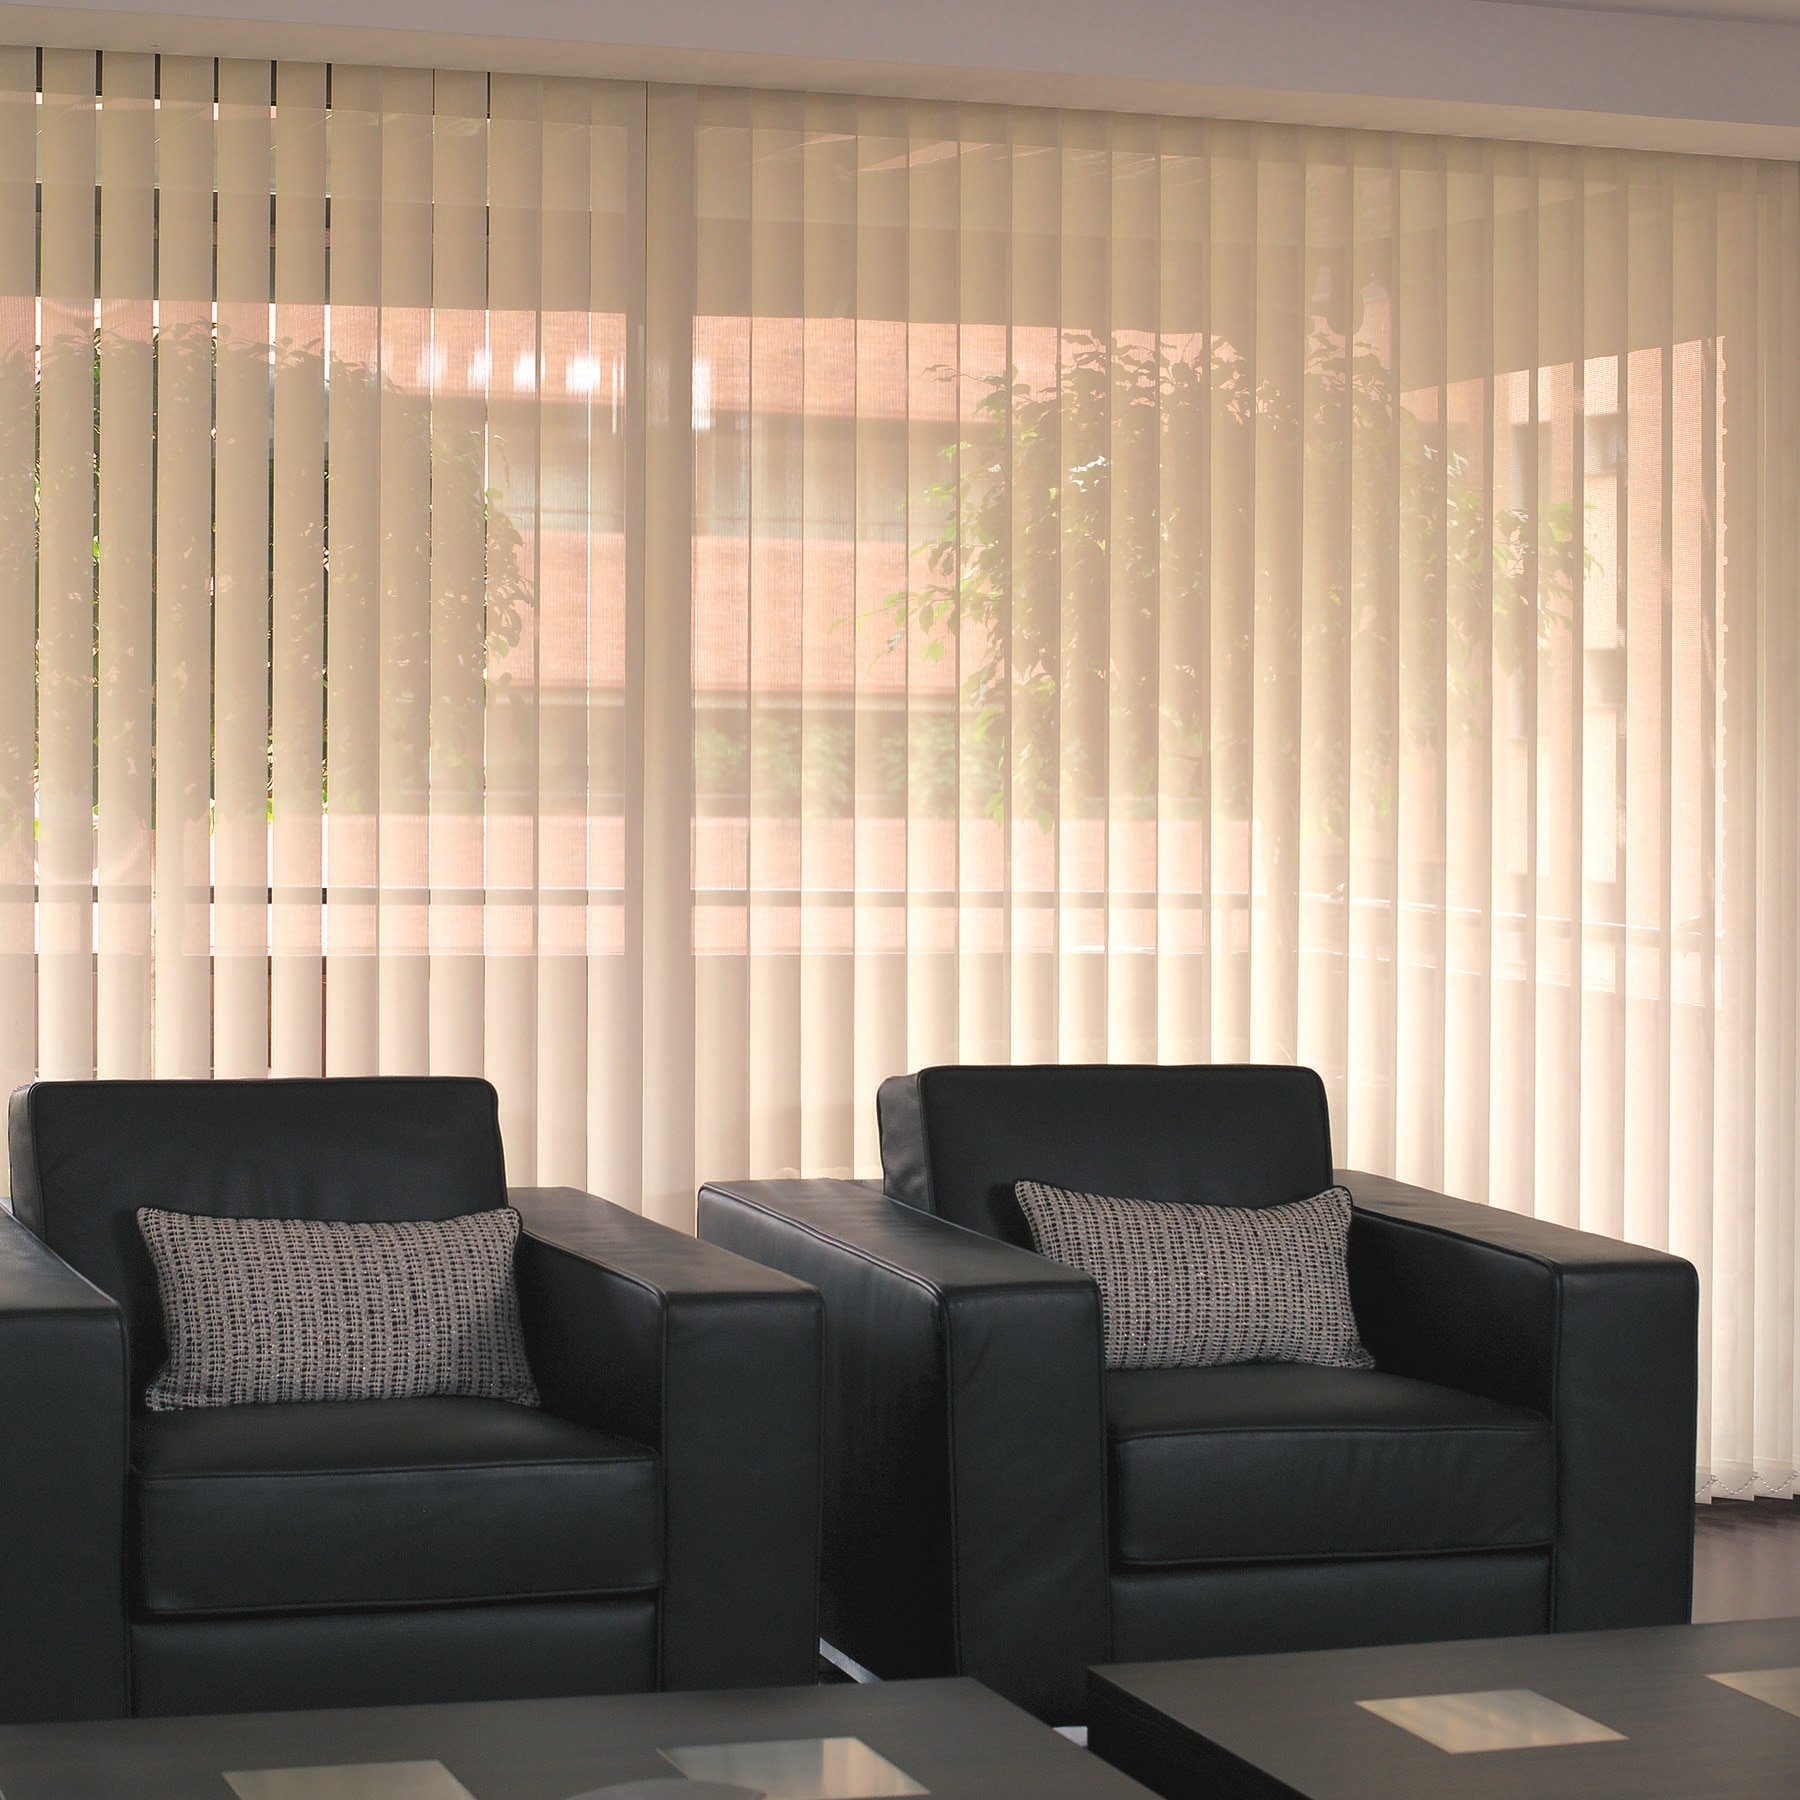 Fabric Vertical Blind Image 3.jpg